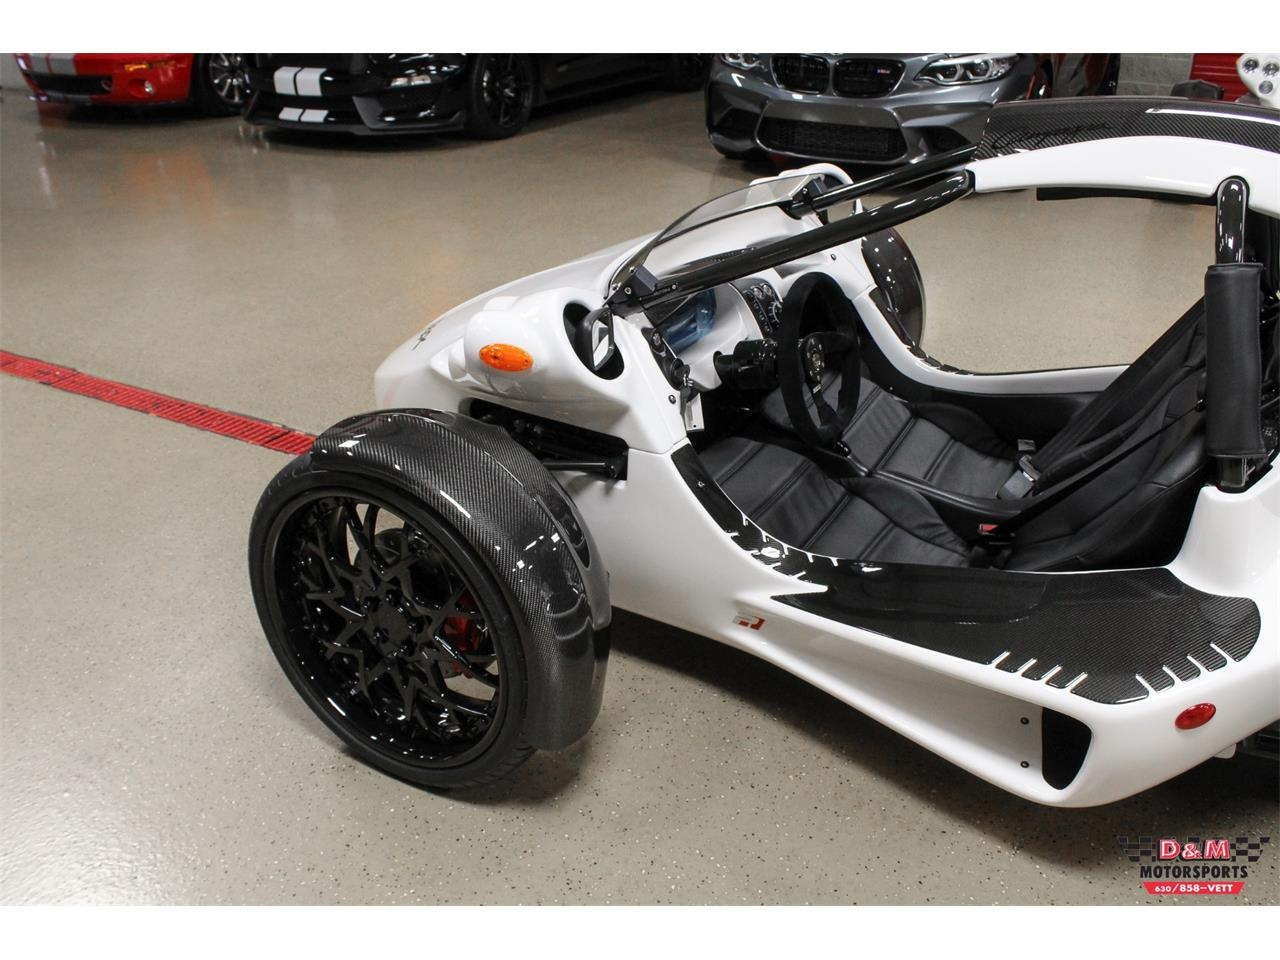 Large Picture of '18 T-Rex located in Glen Ellyn Illinois Offered by D & M Motorsports - PCCJ